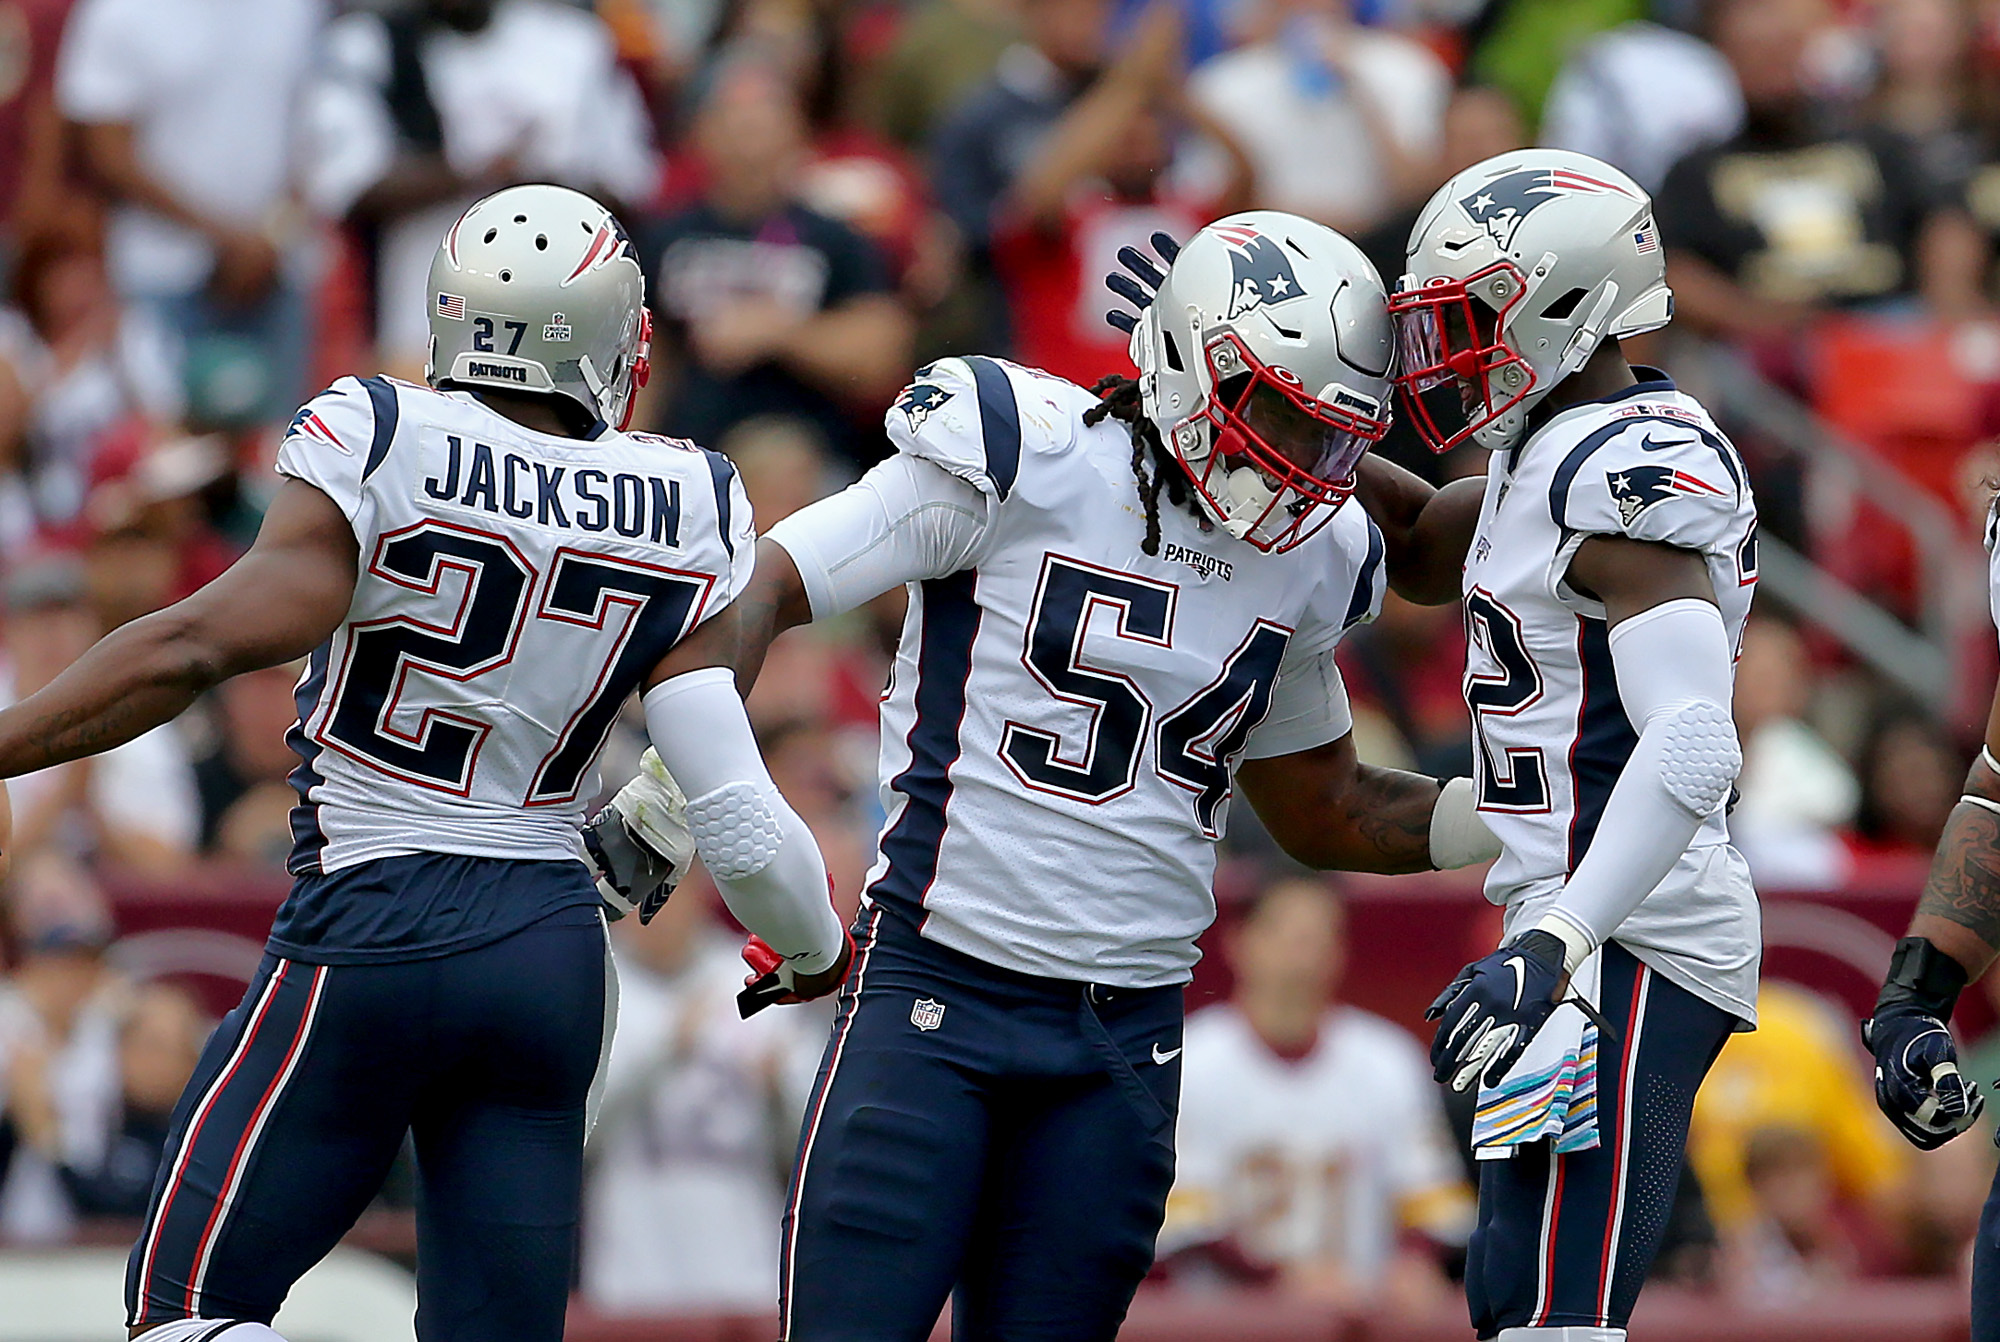 LANDOVER MD. - OCTOBER 6: New England Patriots' Dont'a Hightower celebrates with J.C. Jackson and Devin McCourty after sacking Washington Redskins quarterback Colt McCoy for a loss of 6 yards during the 2nd quarter of the game at FedEx Field on October 6,